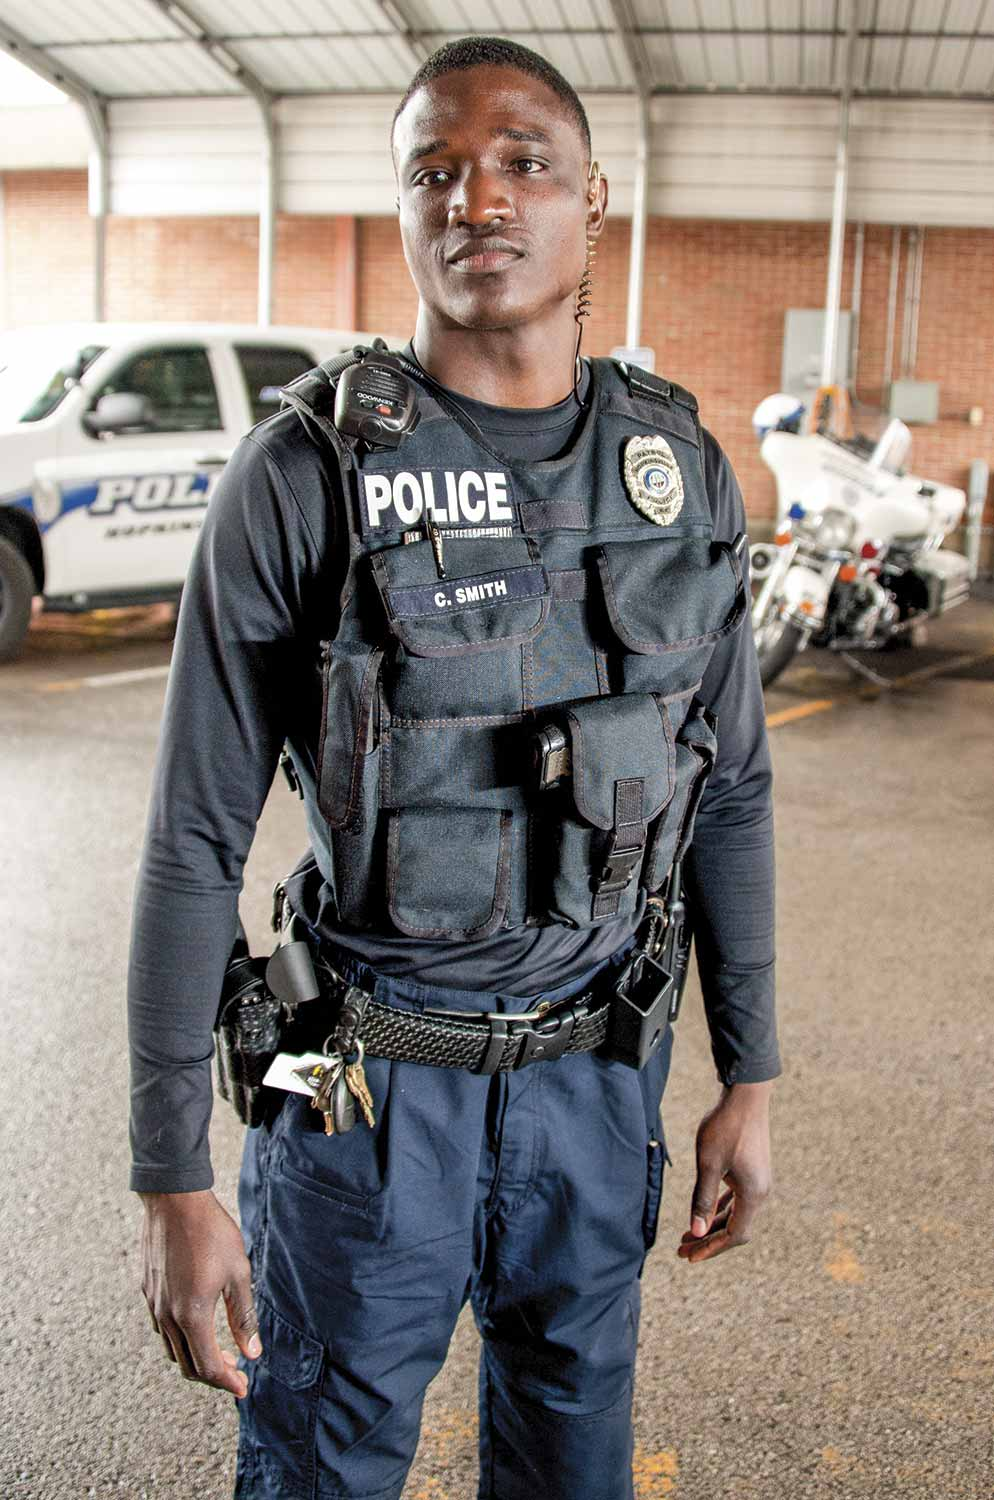 Hopkinsville Police Officer Cory Smith, one of the agency's newest K-9 handlers, also wears an external load bearing vest. The police department sought this particular style of vest for their officers in an effort to reduce the cost associated with officer injuries and fatigue as well as to promote a healthier environment and increase officer wellbeing. (Photo by Jim Robertson)